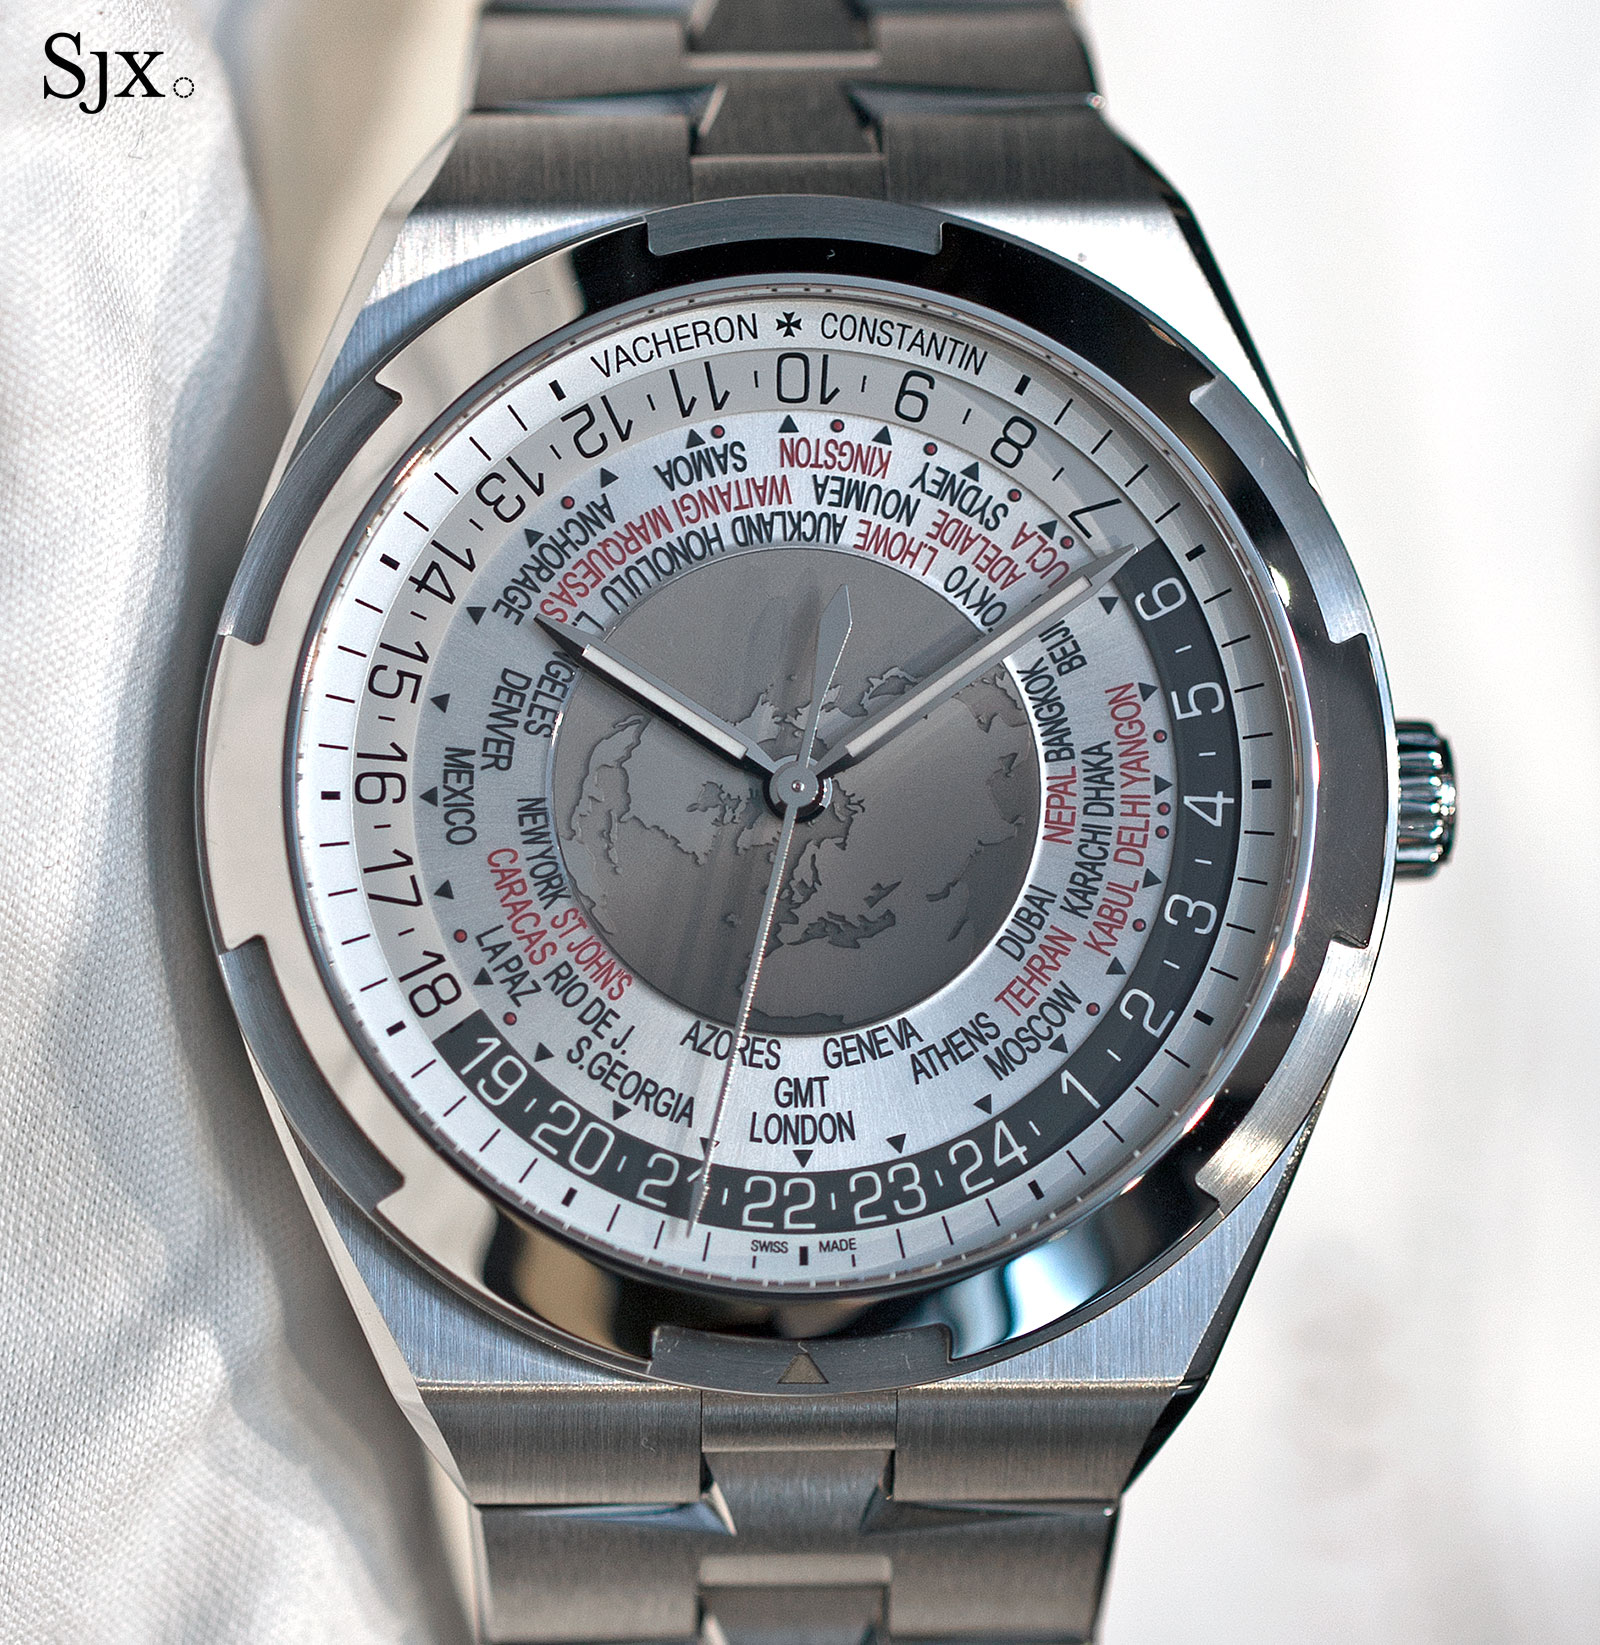 Vacheron Constantin Overseas World Time 9